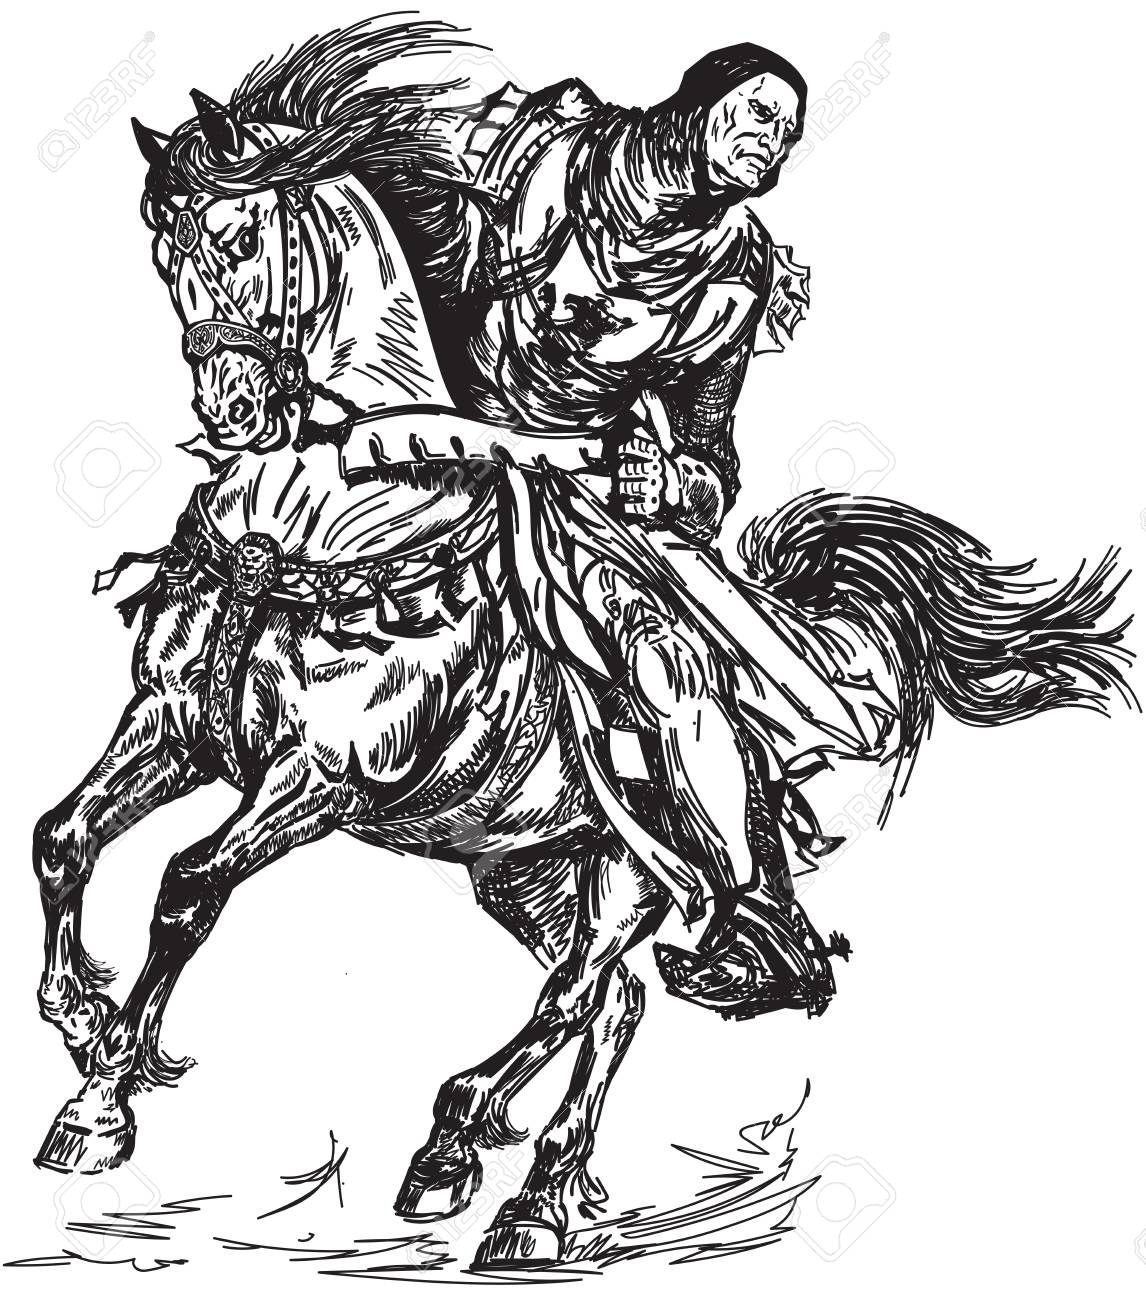 Medieval Knight Galloping His Horse Black And White Graphic Royalty Free Cliparts Vectors And Stock Illustration Image 125019693